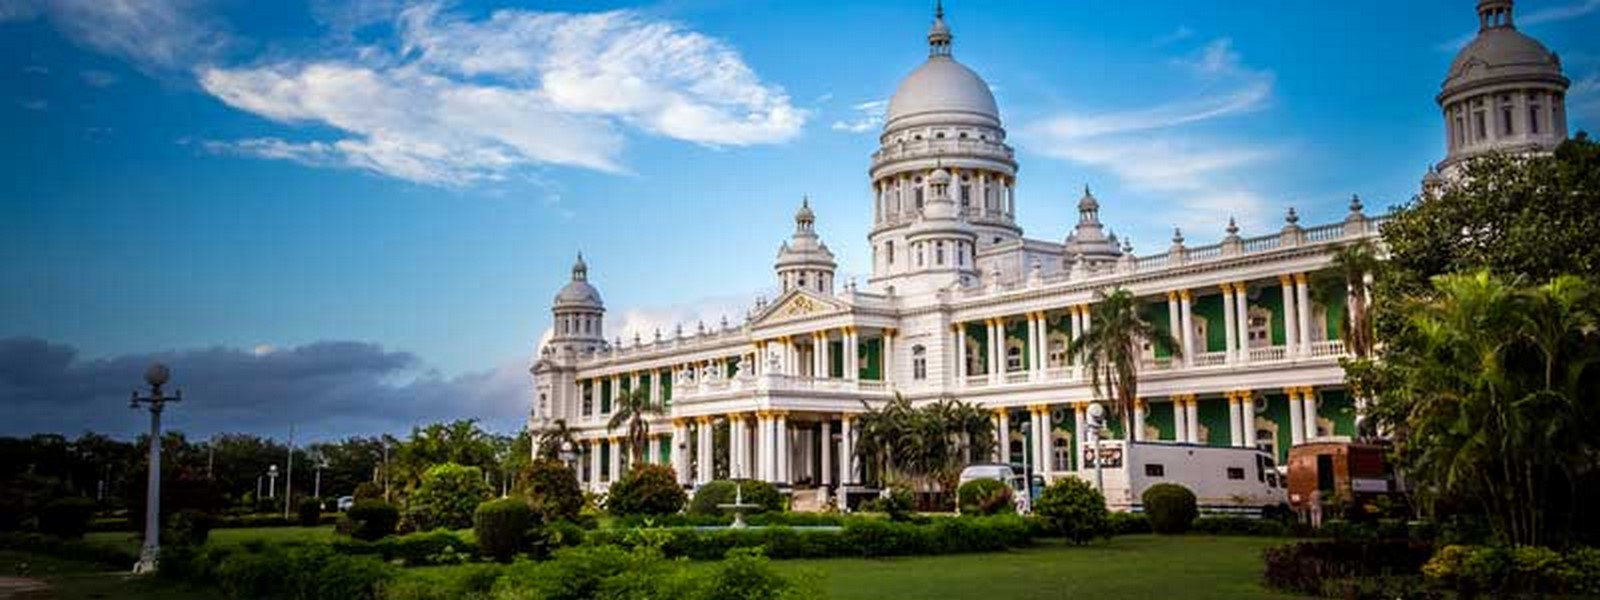 Places to visit in Mysore for the Travelling Architect - Sheet4